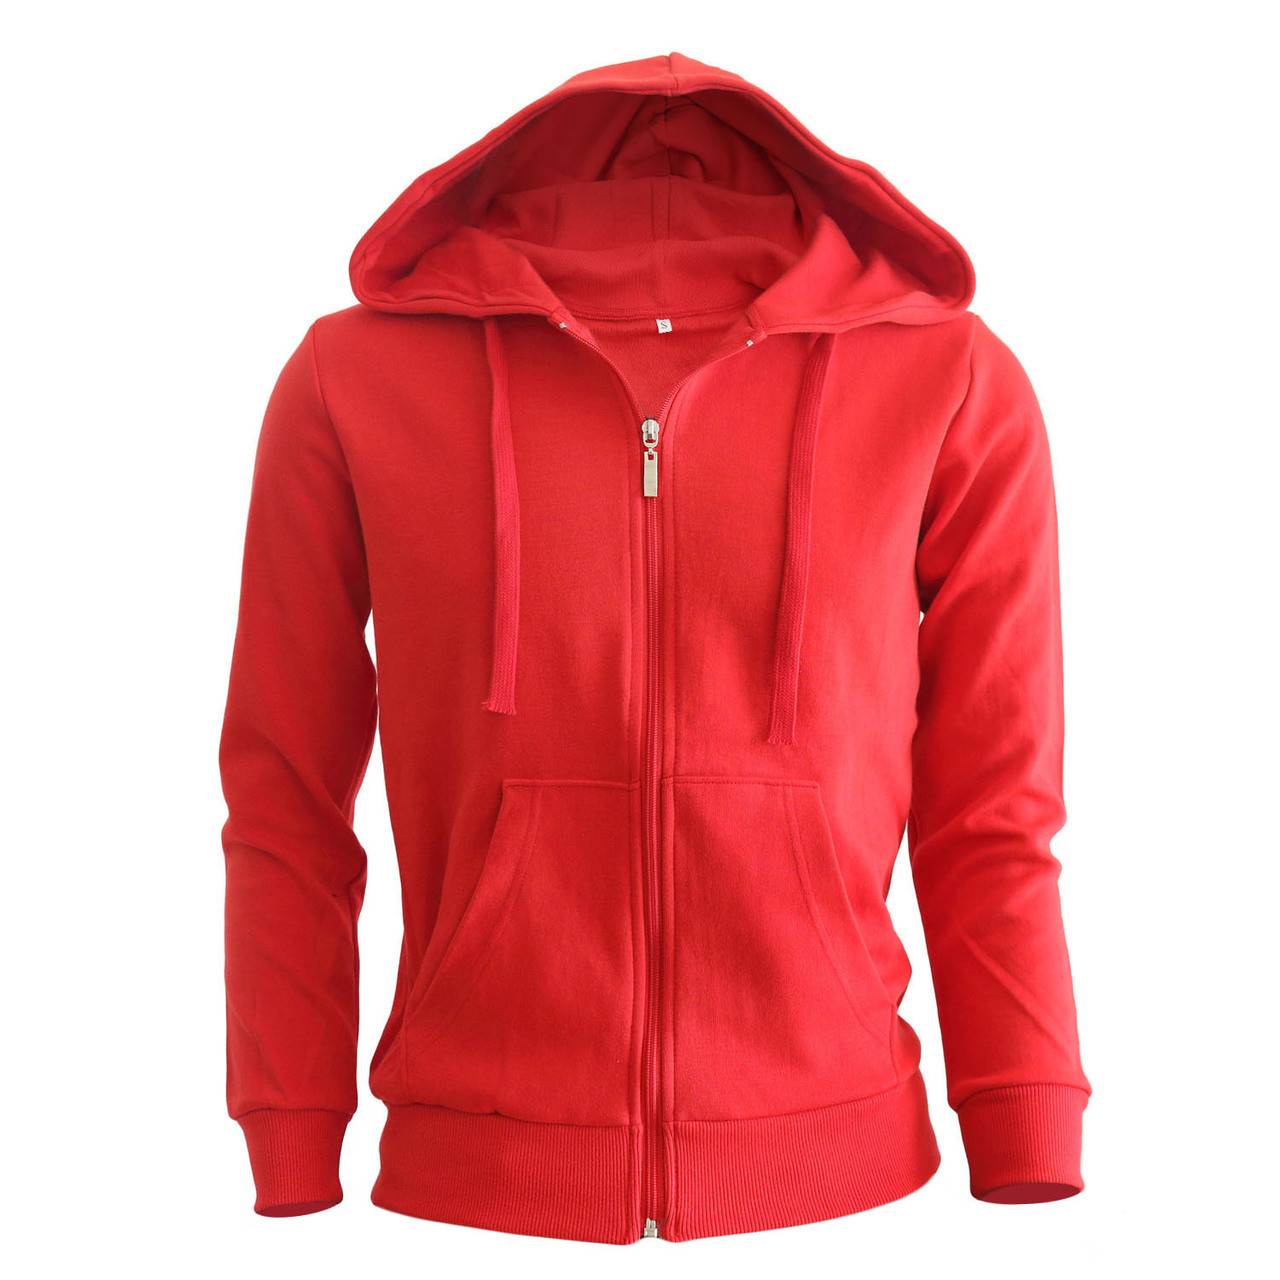 5d699cf8f6 red hoodie t-shirt for unisex cotton hoodie t-shirt men hoodie t-shirt,  women hoodie